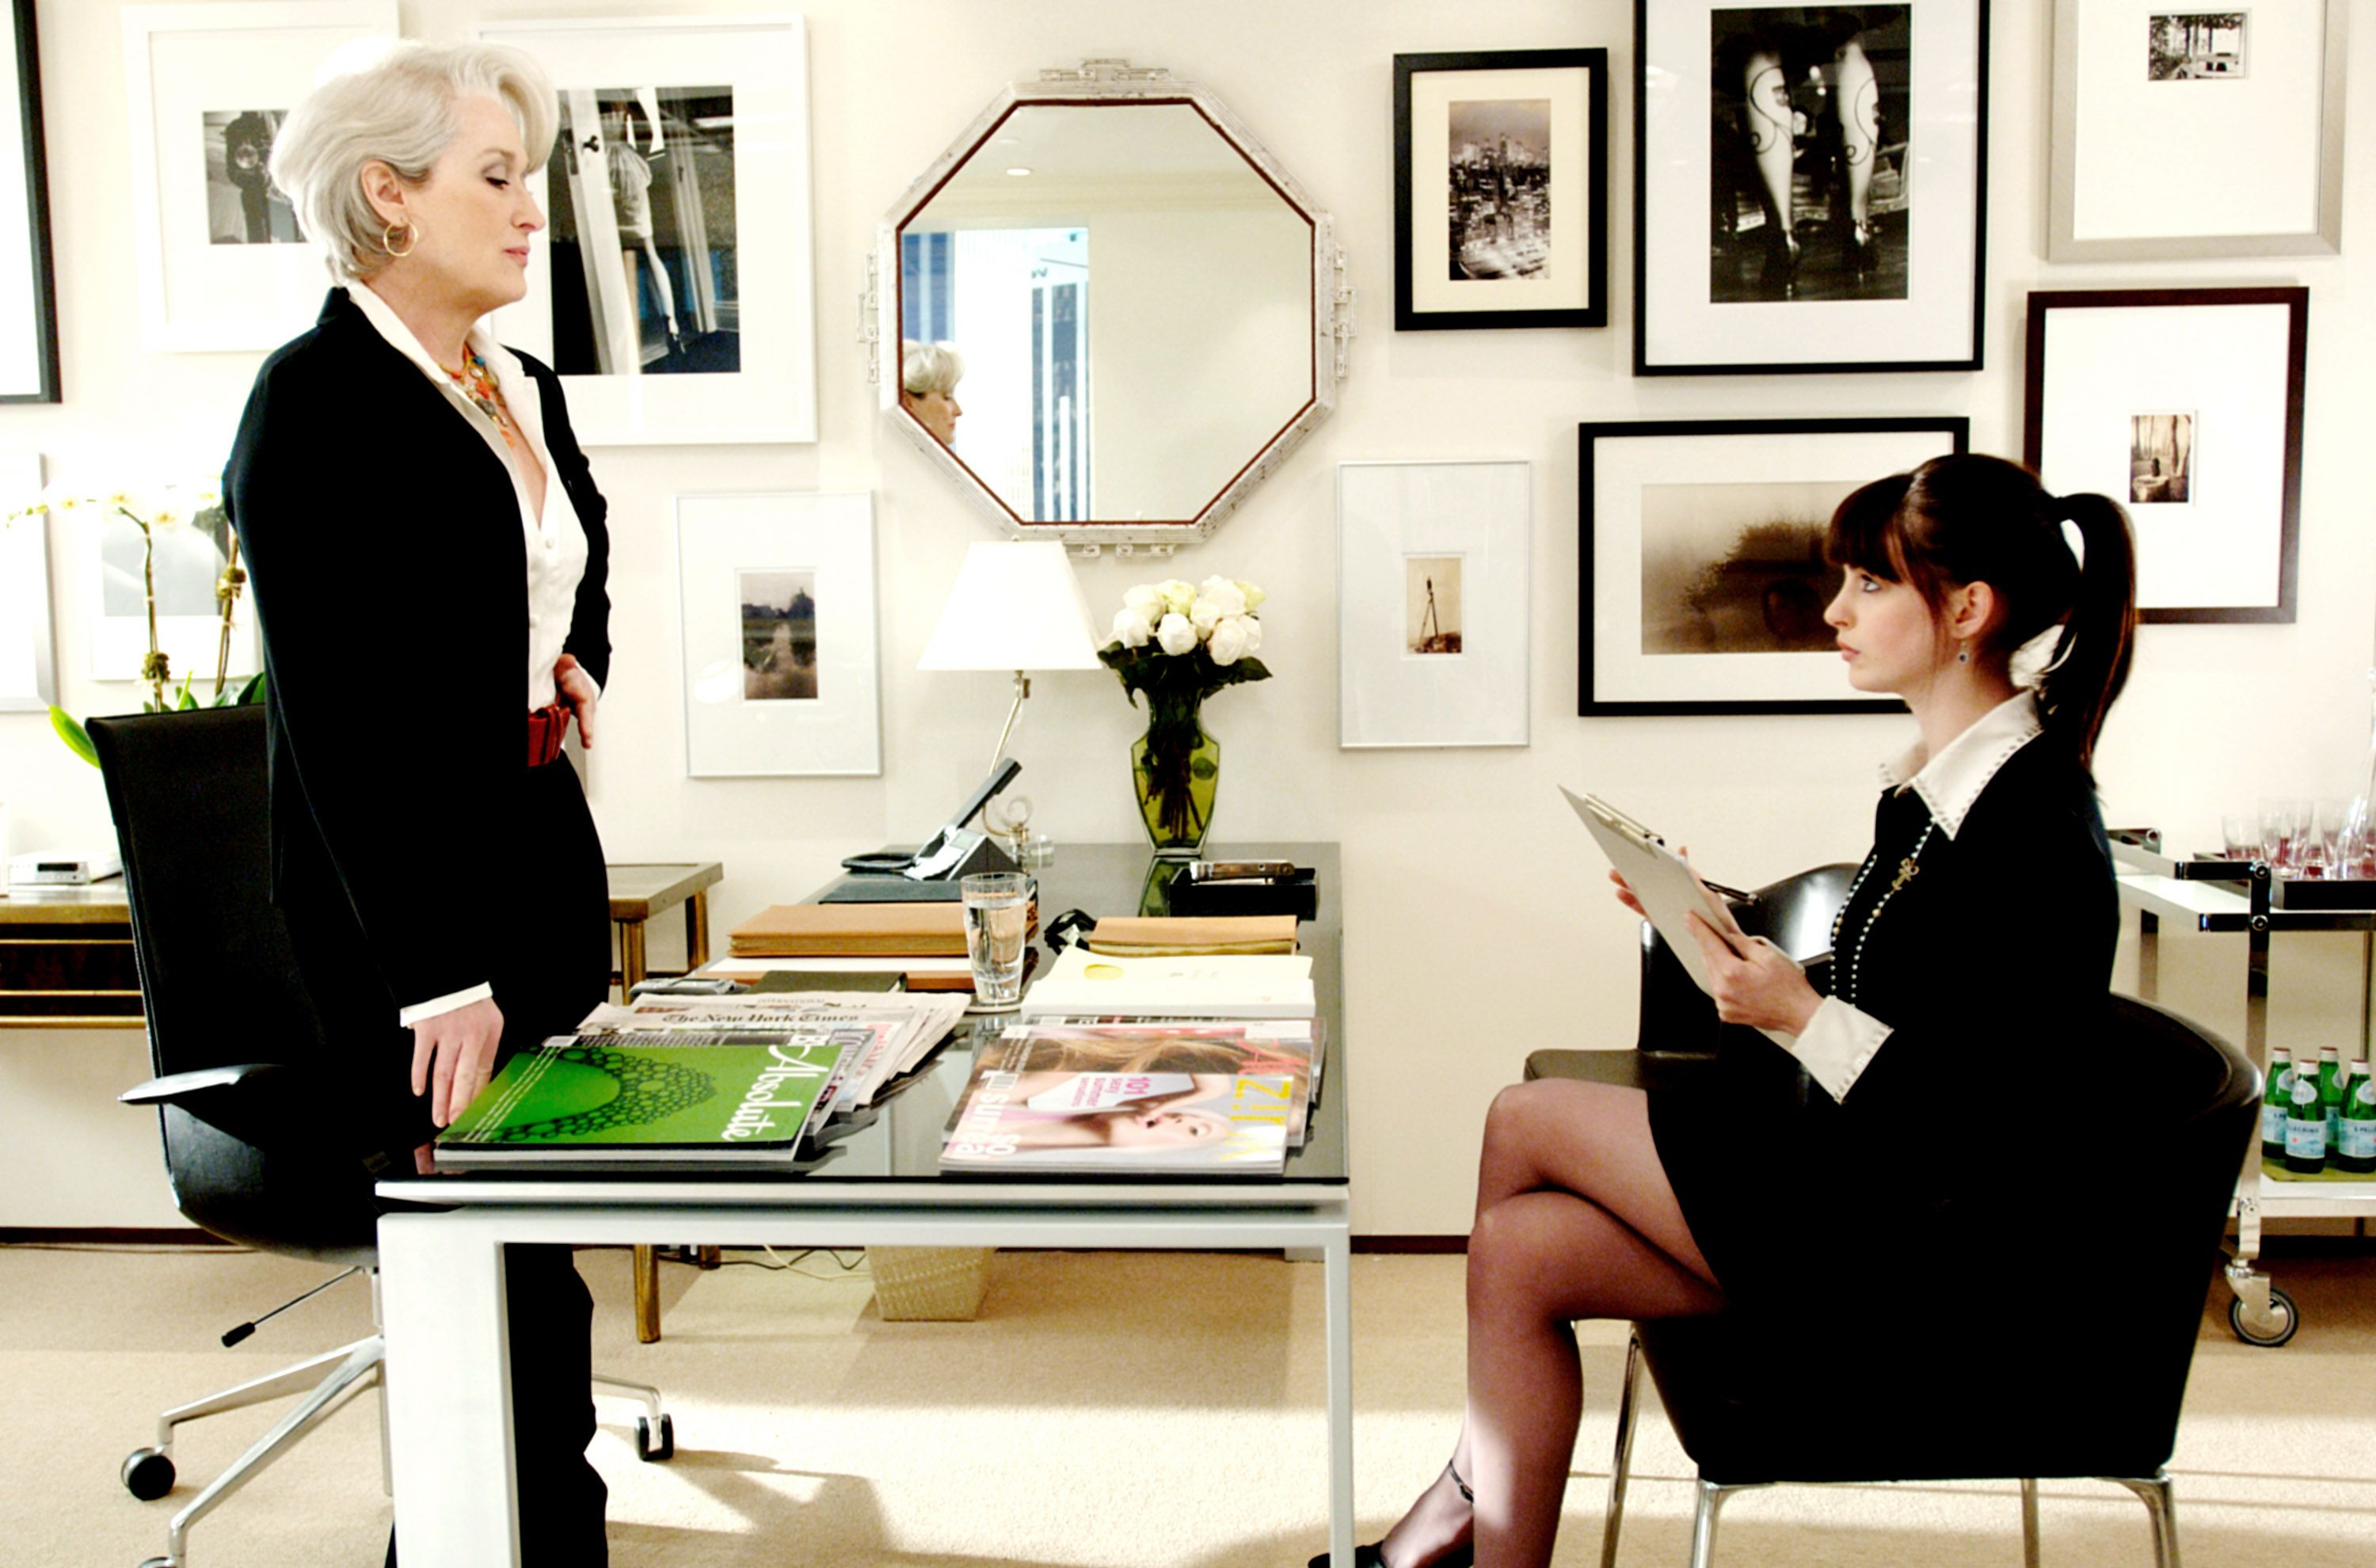 A Musical Based on 'The Devil Wears Prada' Will Arrive Next Summer